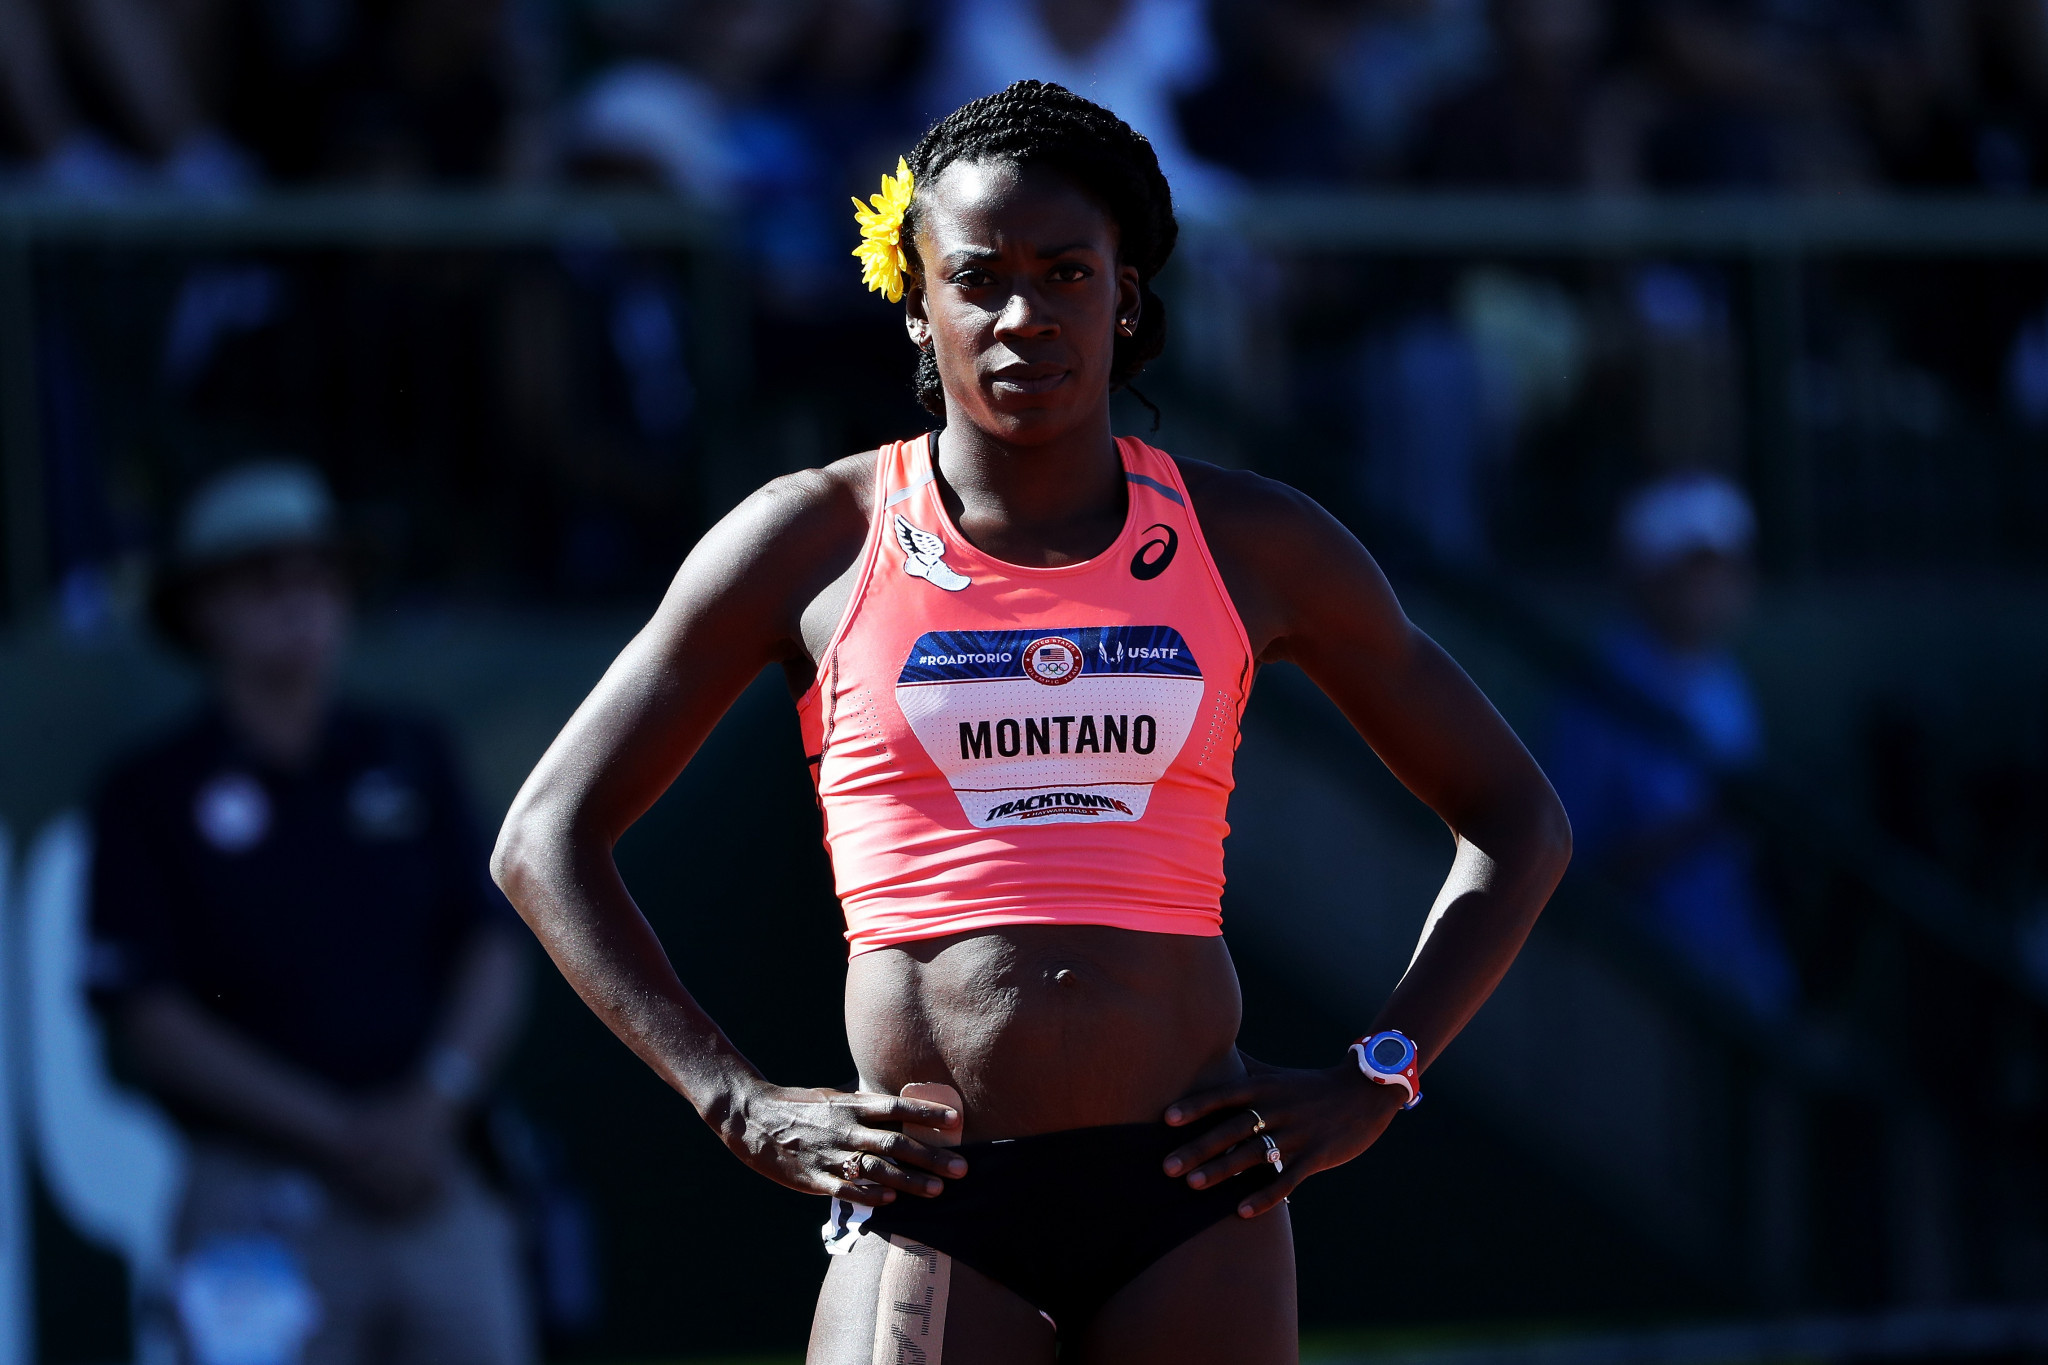 Alysia Montano will receive her World Championship bronze medals this month ©Getty Images